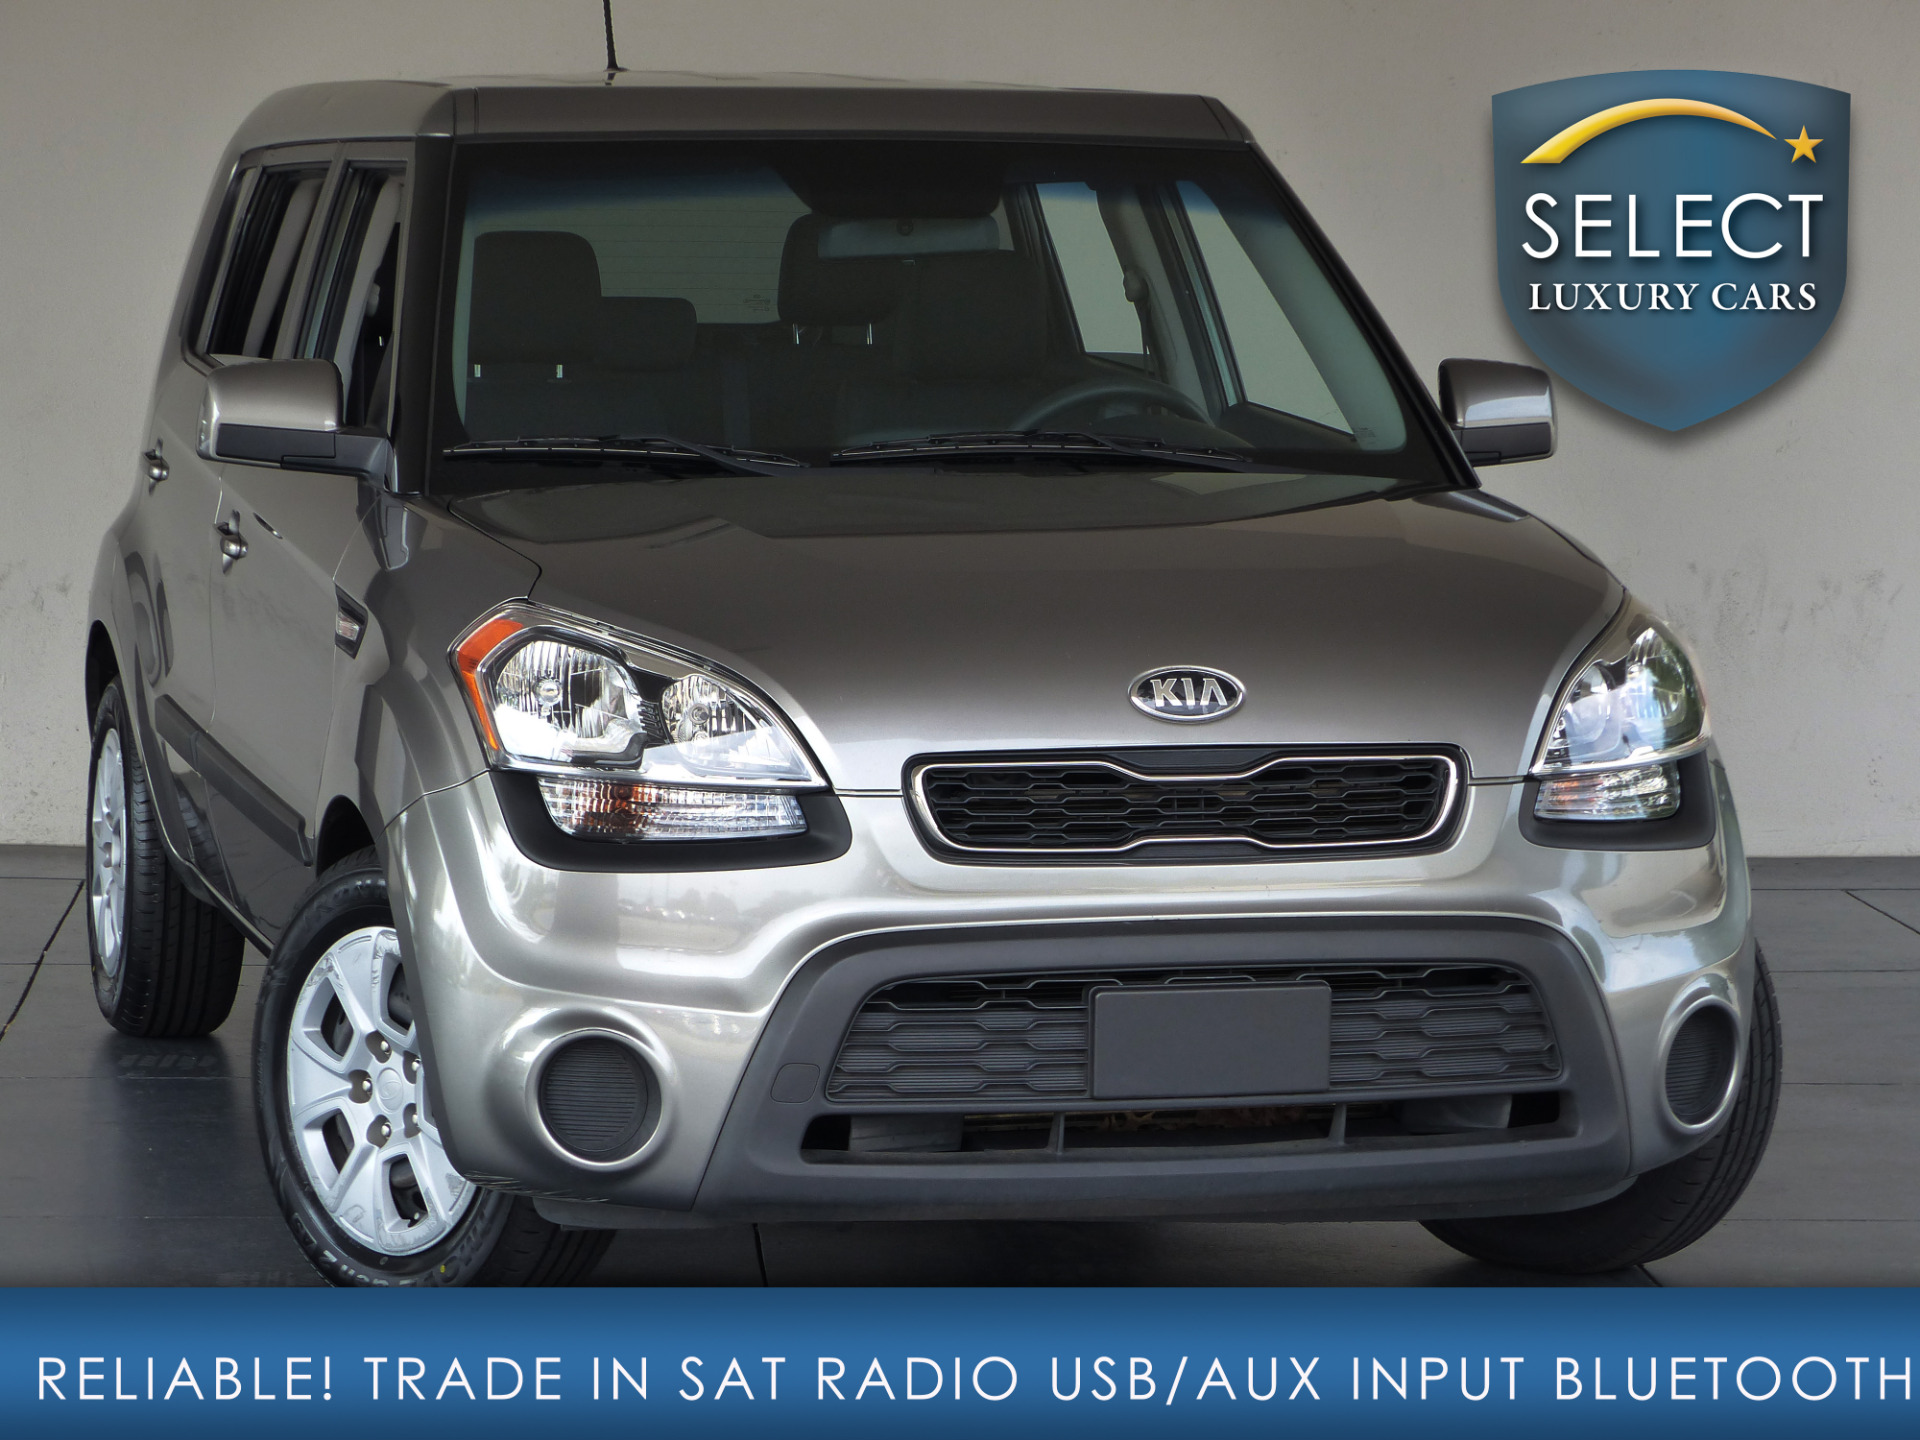 Kia Soul: Using the USB device